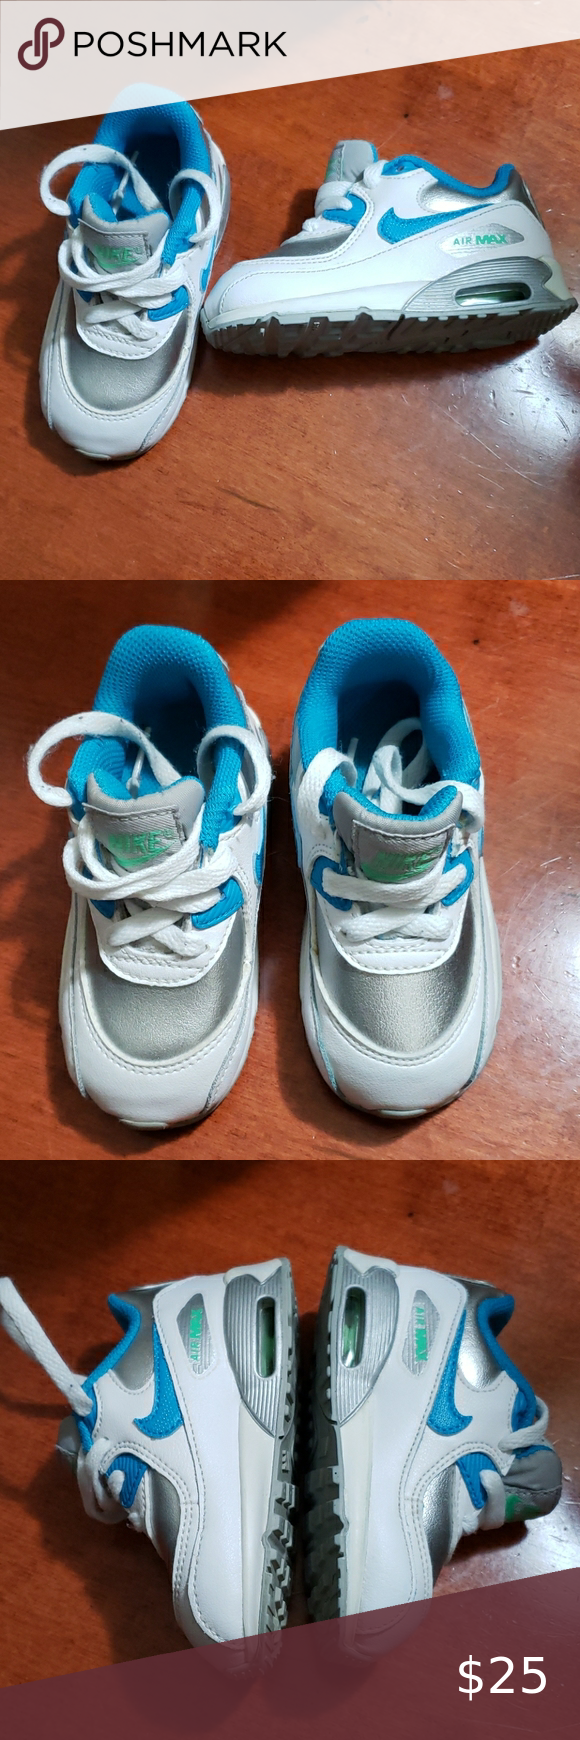 Nike Air Max 90 baby boy shoes size 6C